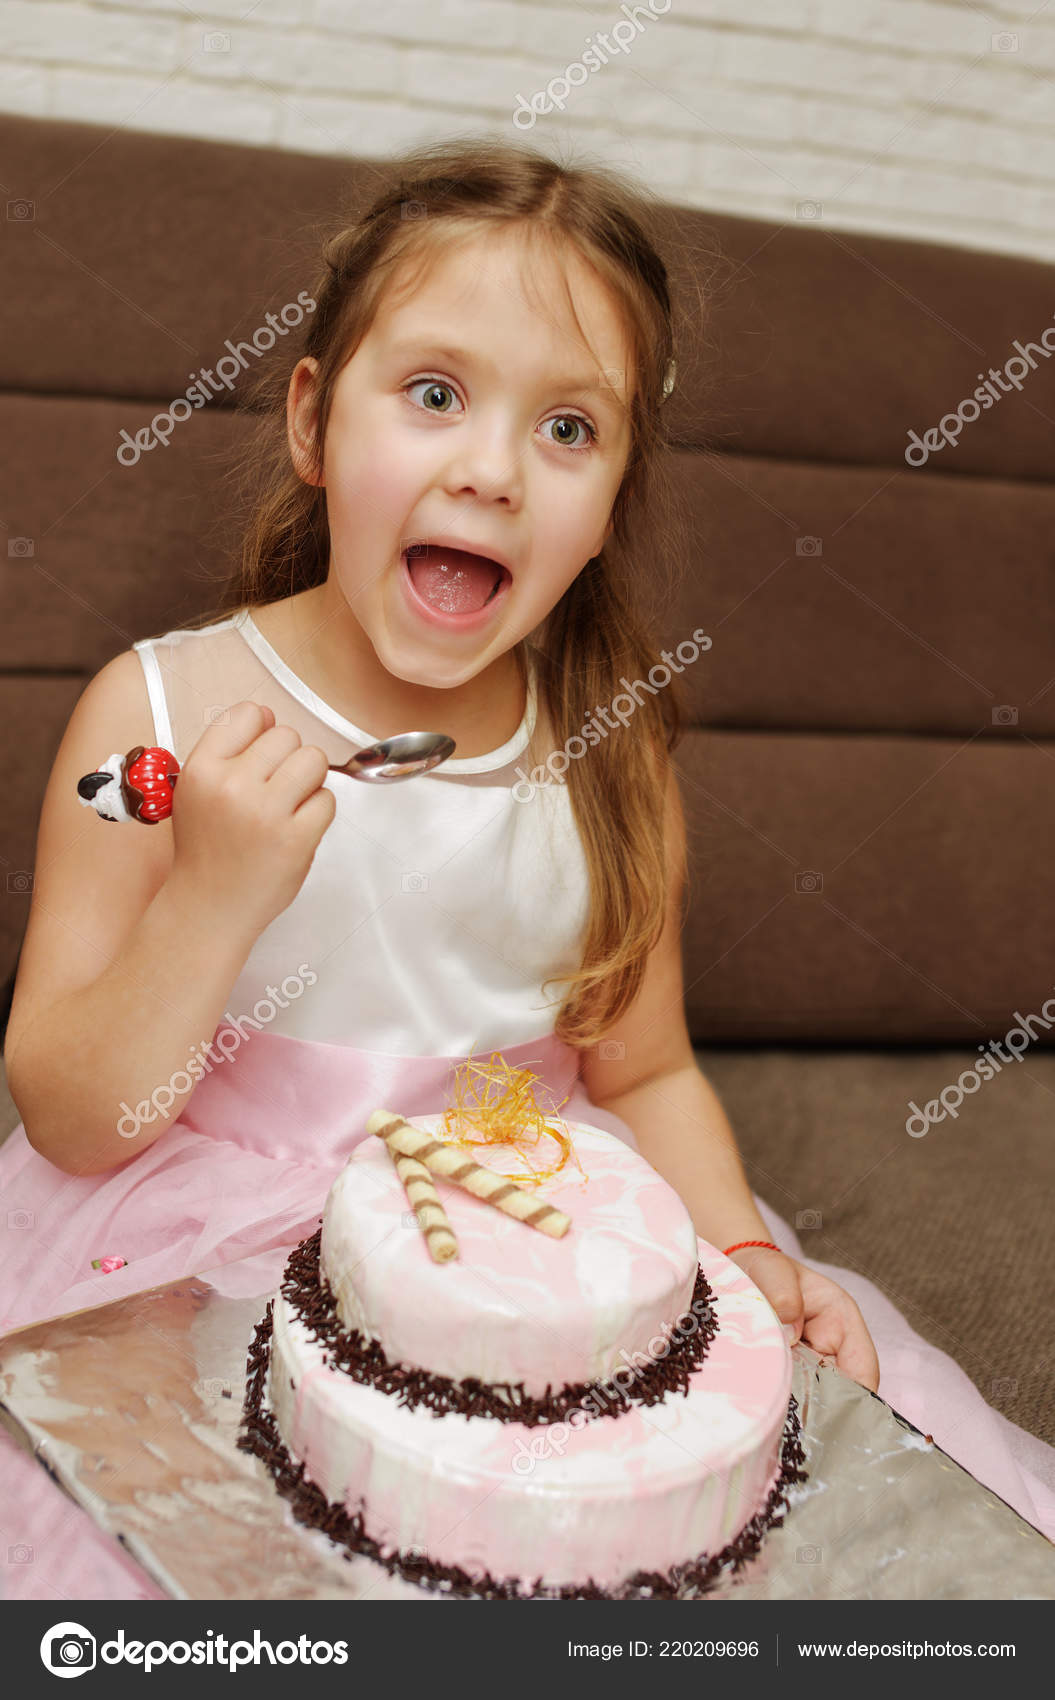 Terrific Funny Kid Girl Eating Birthday Cake Open Mouth Stock Photo Funny Birthday Cards Online Inifofree Goldxyz